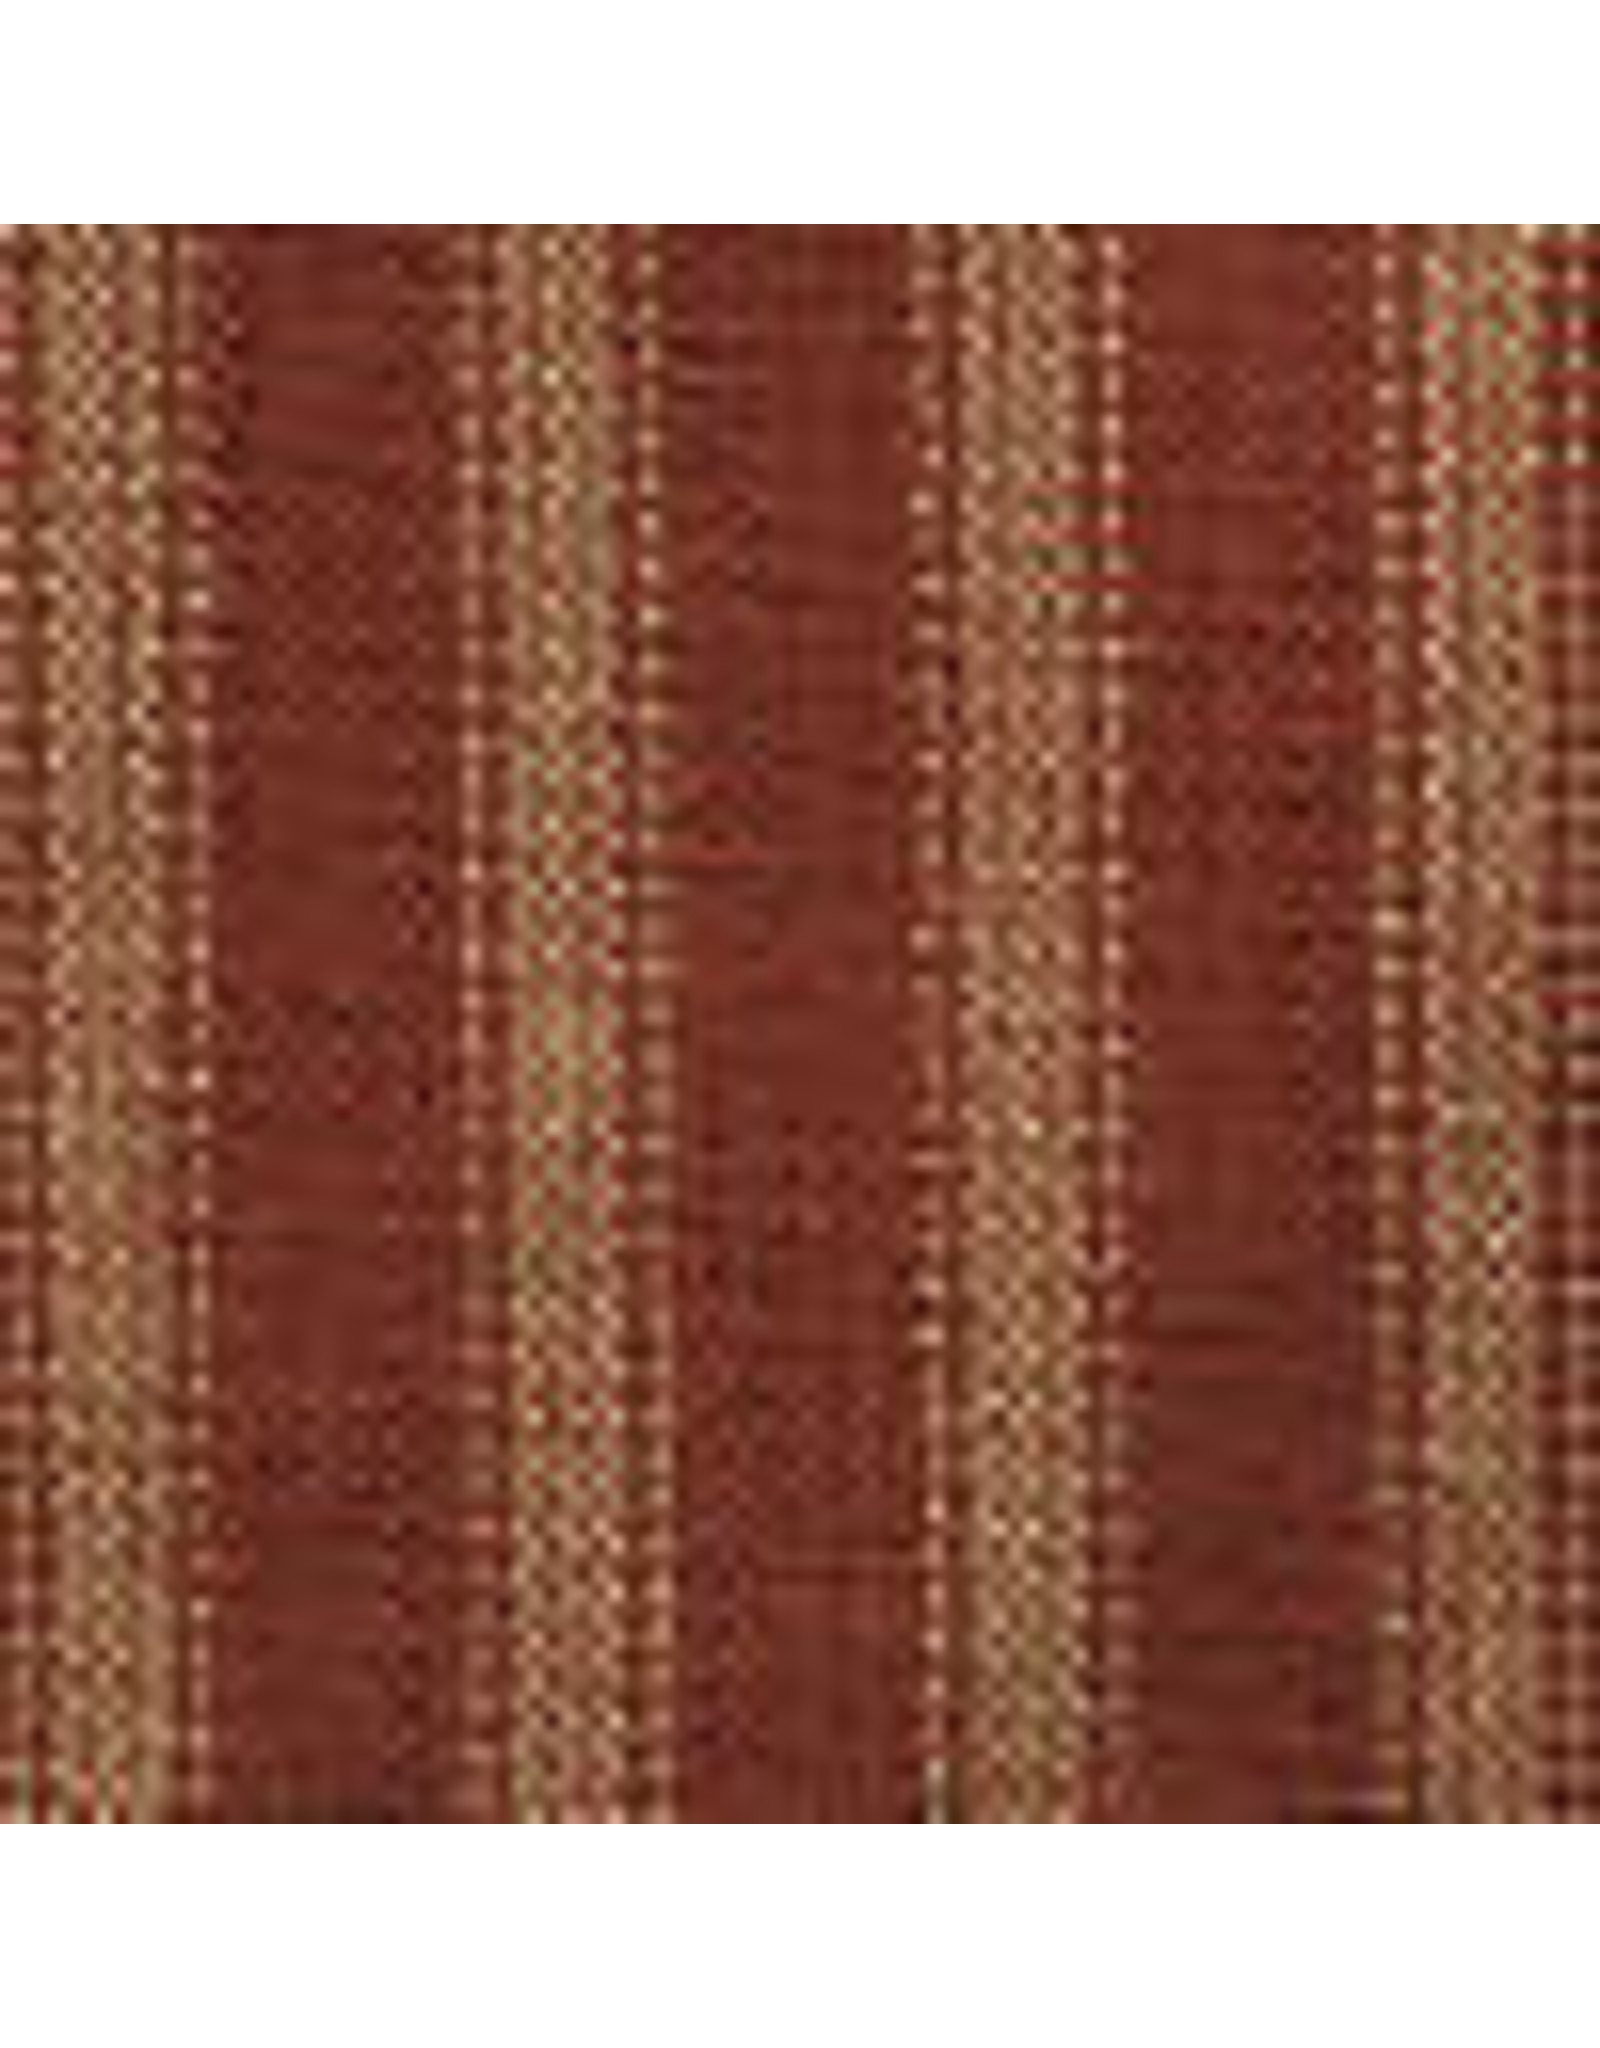 Yd Red and Tan Dark Ticking Fabric #37